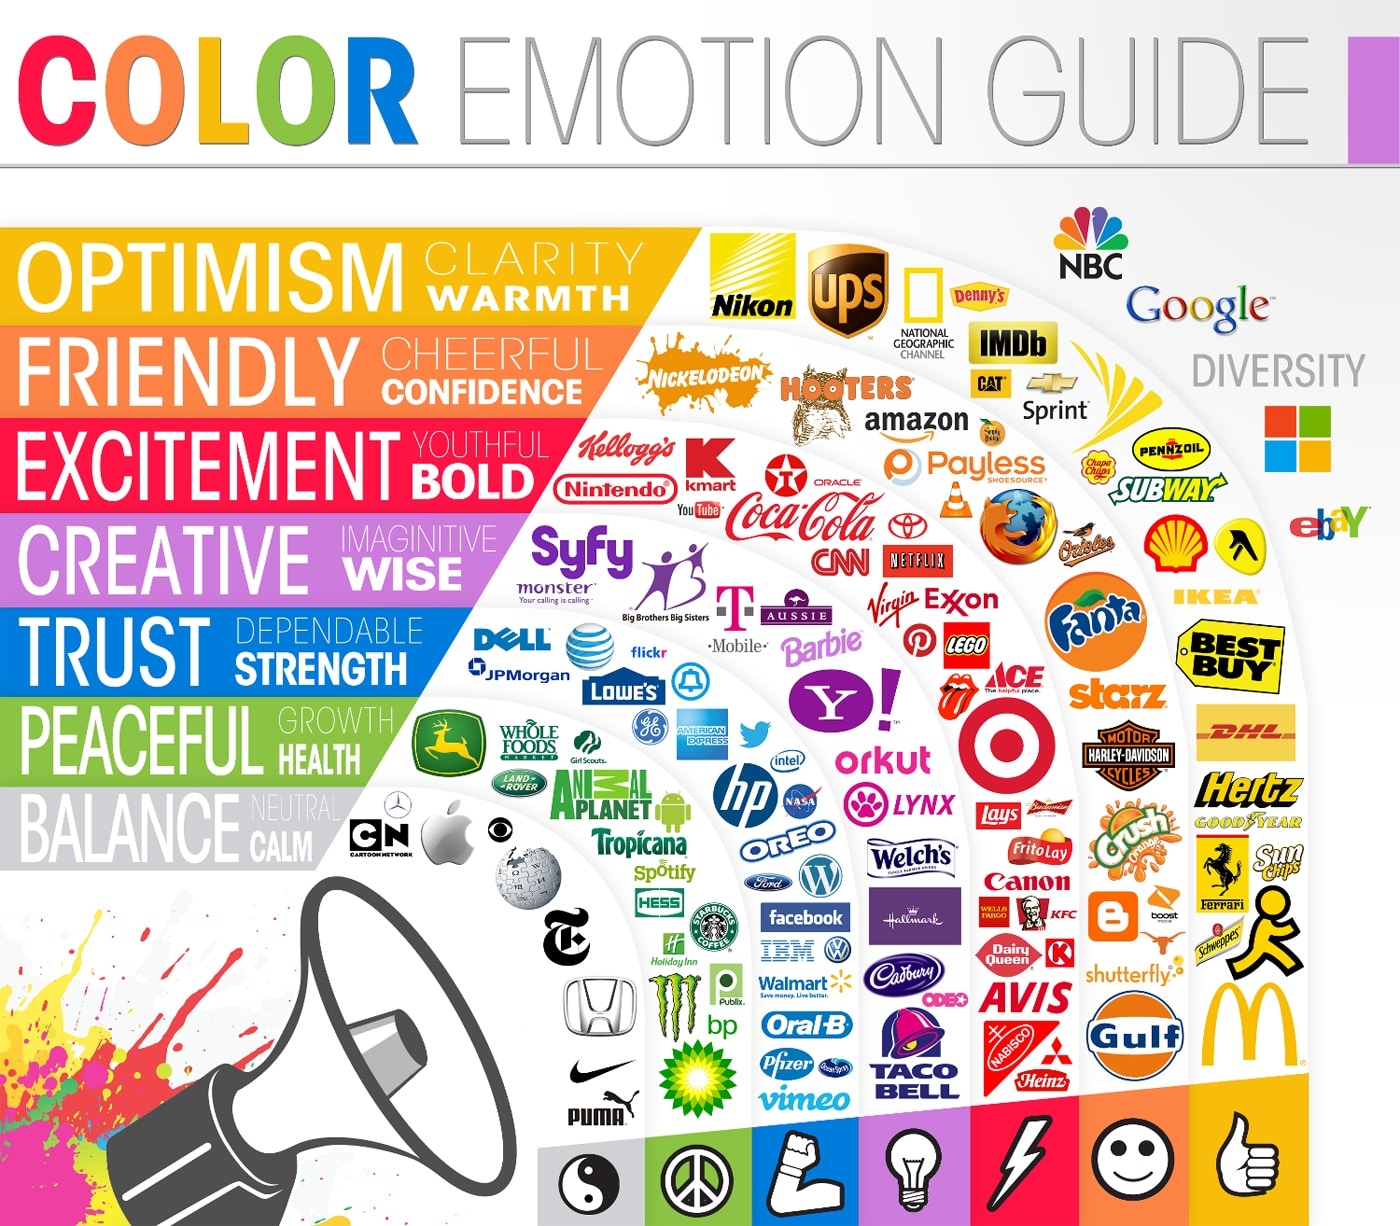 Color Emotion Guide: Learn What Emotions Your Logo Represents